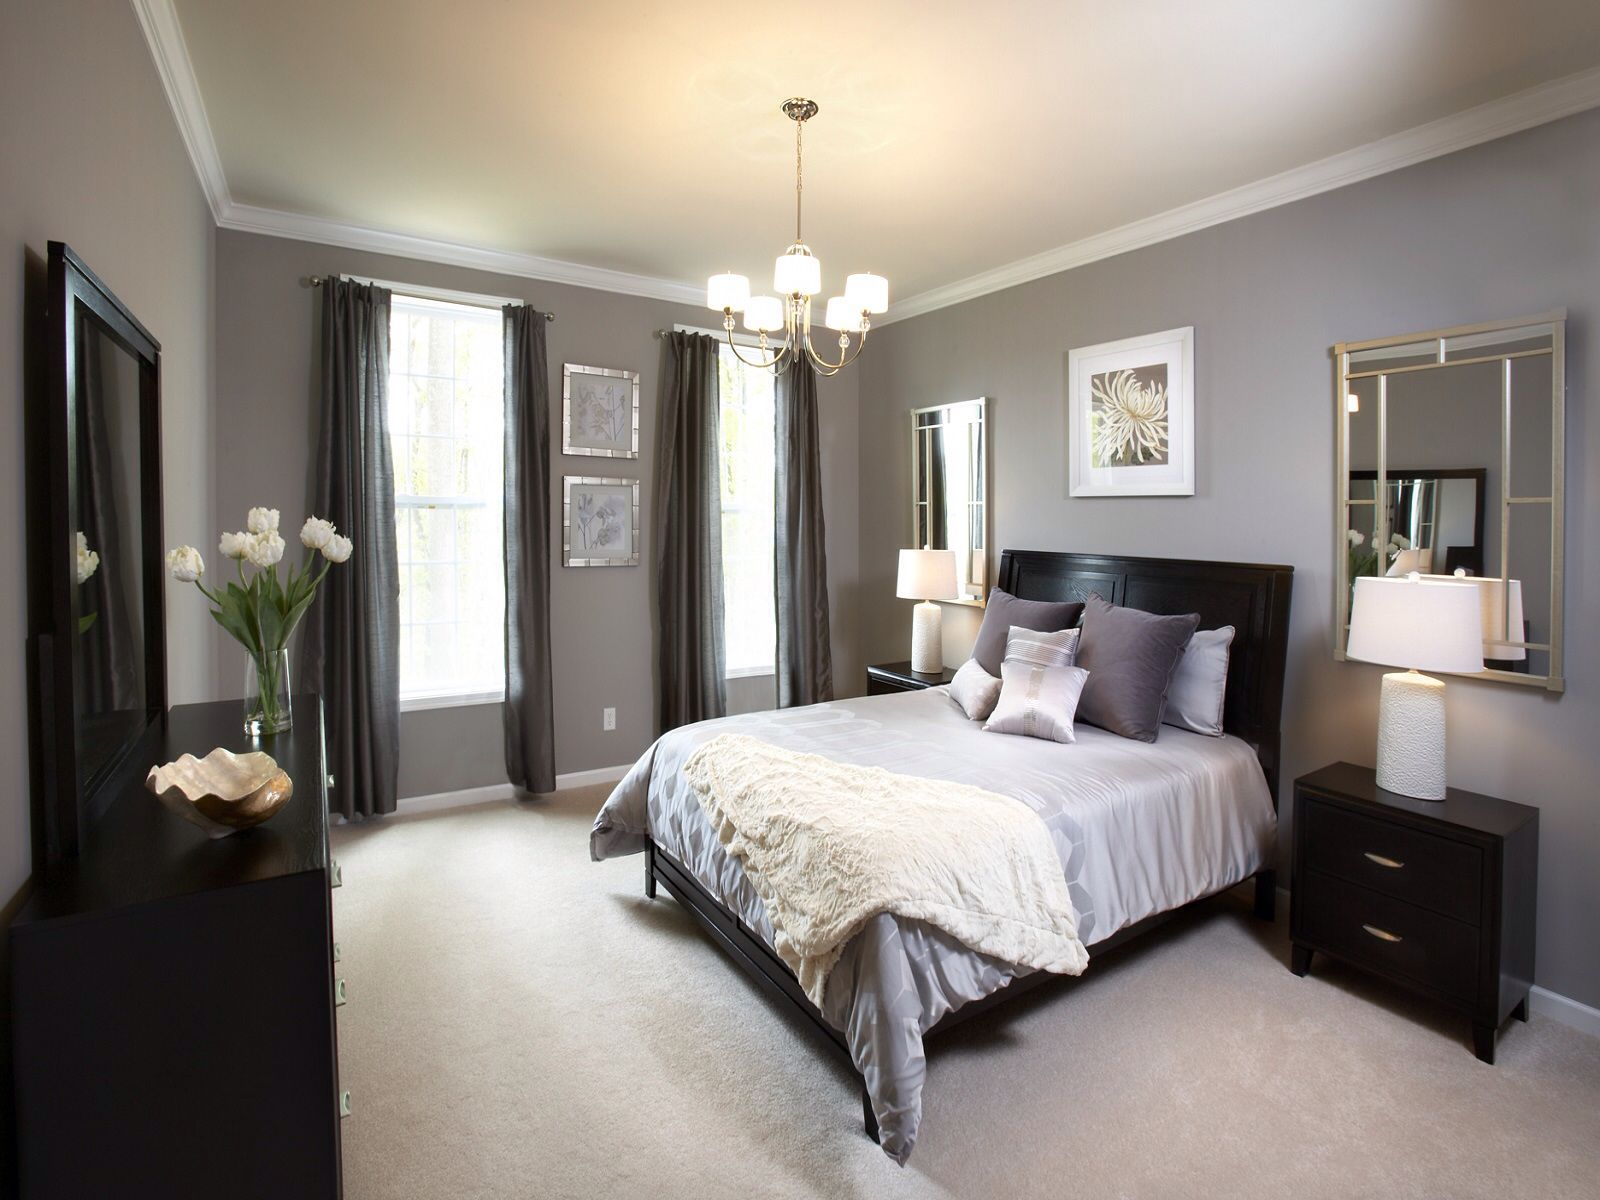 Ordinaire Grey Walls And Curtains With Dark Bed And Tables Grey Bedroom Walls, Master Bedroom  Grey